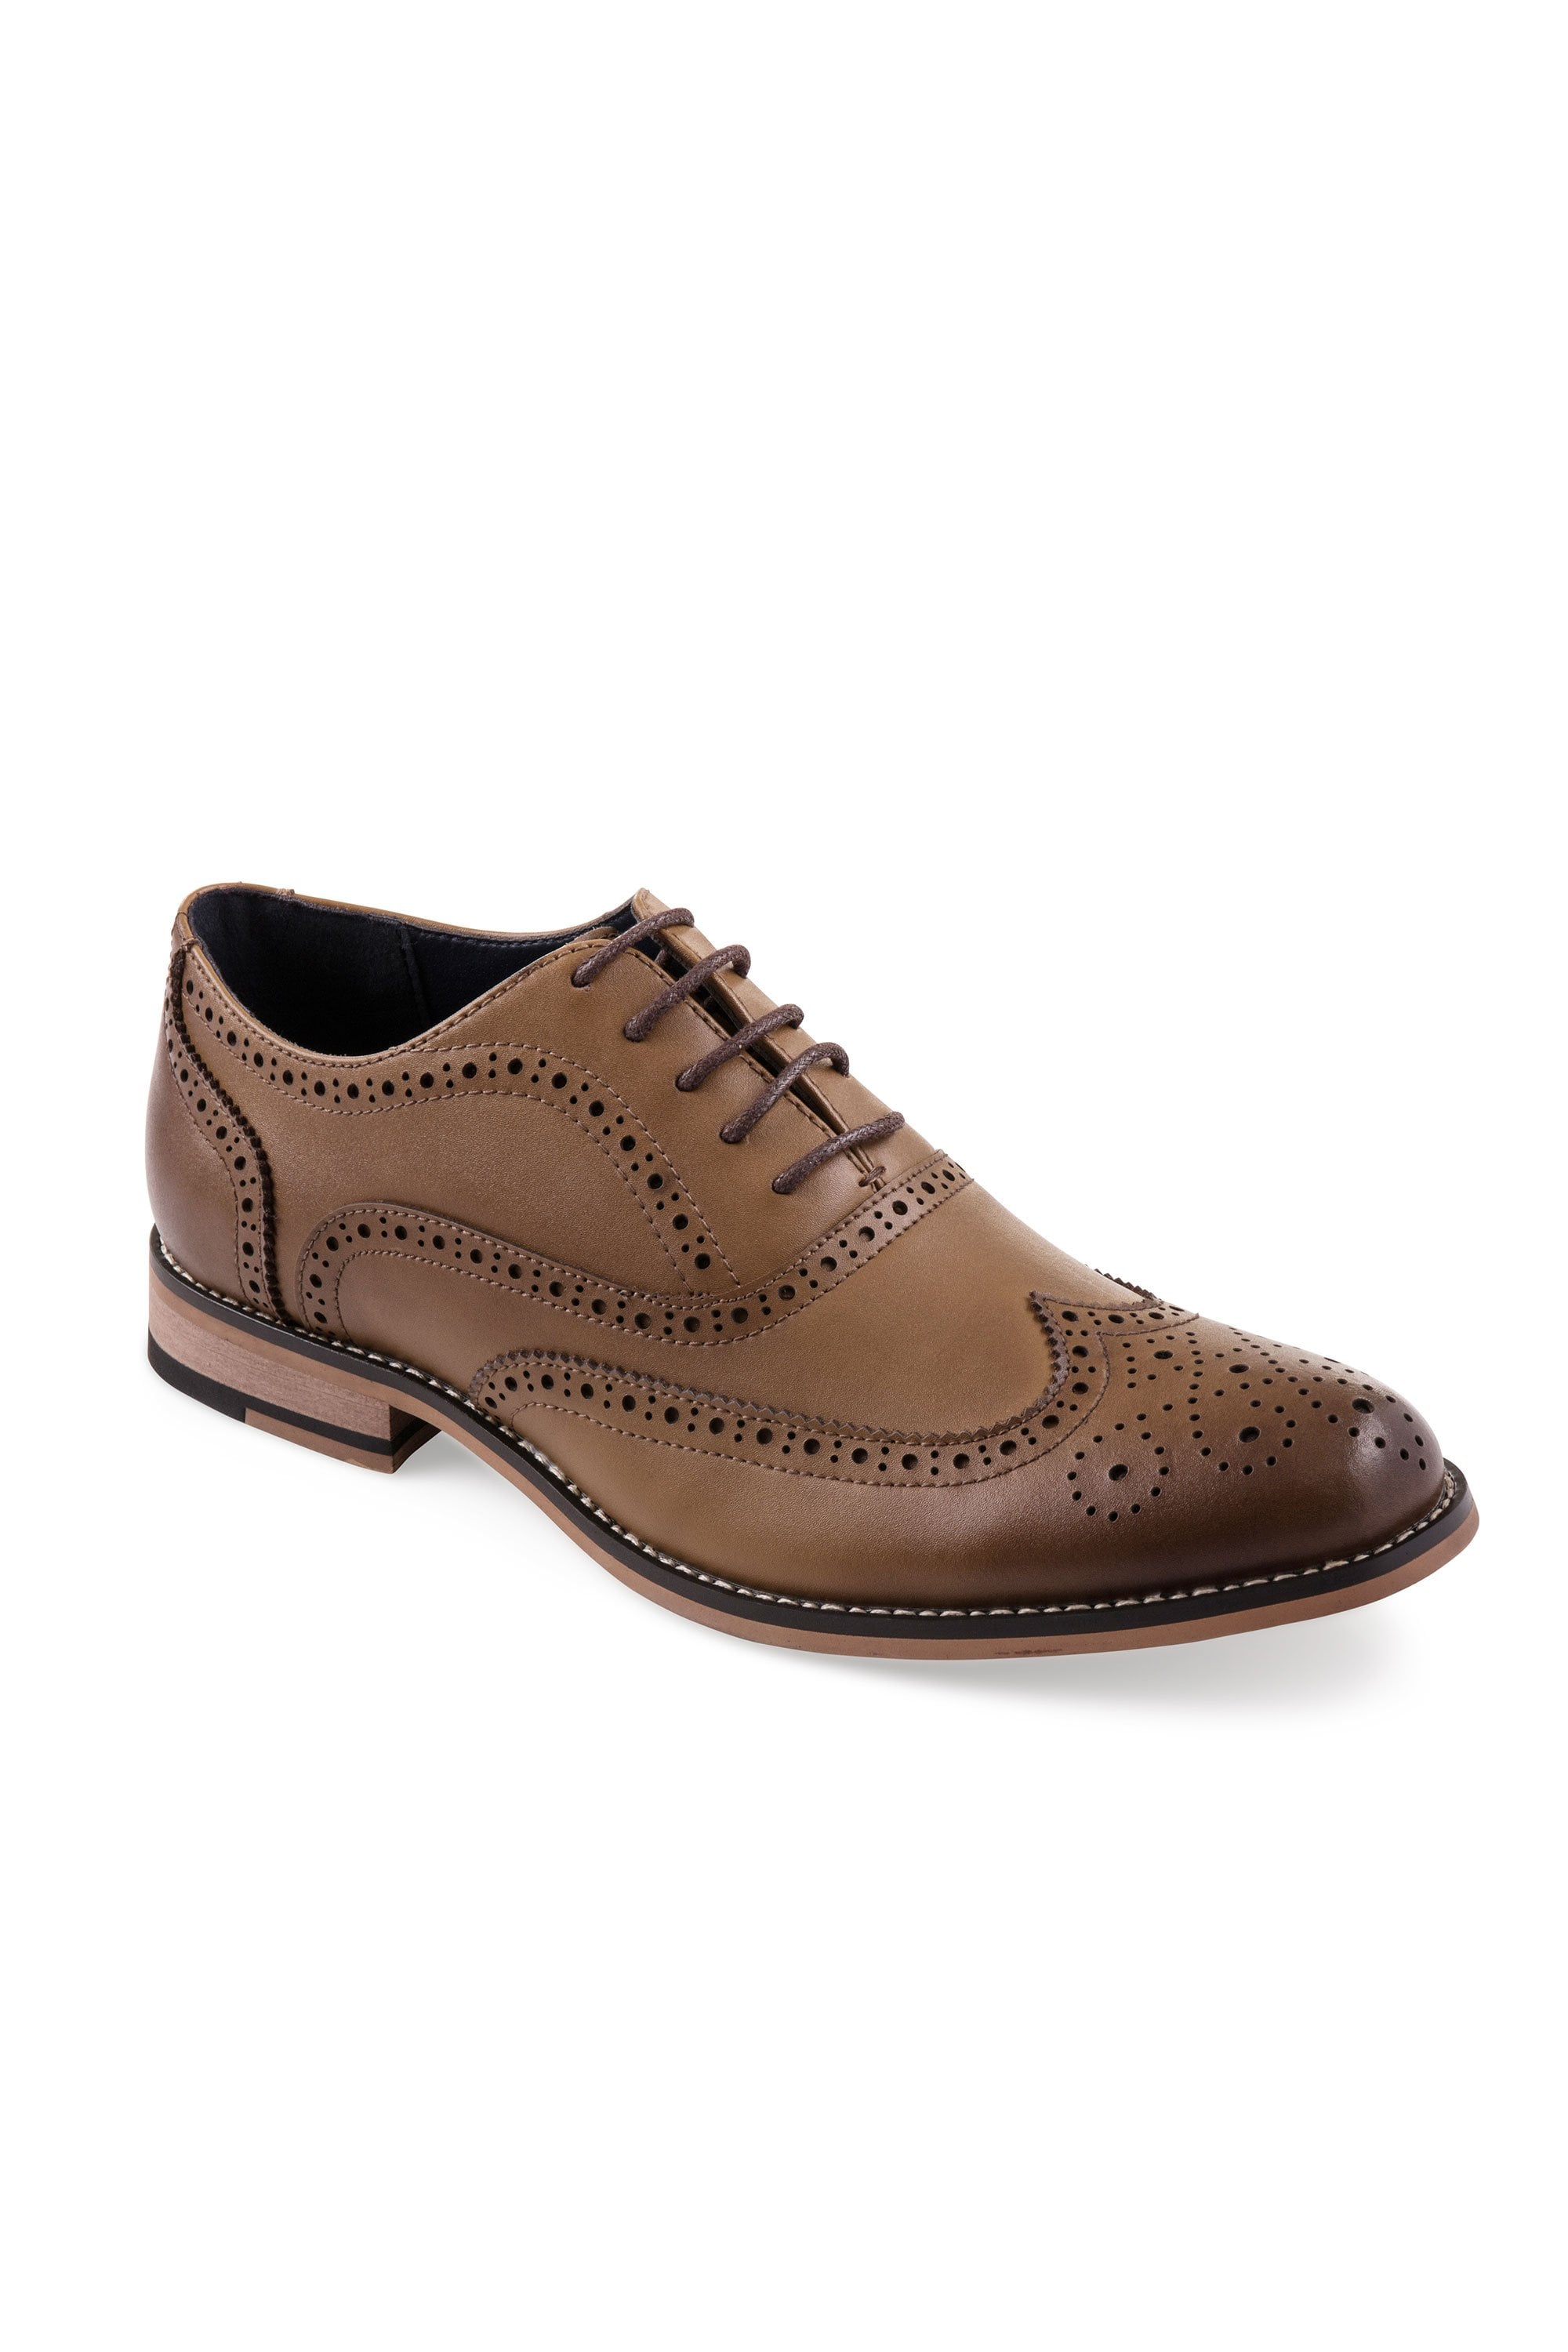 50% price outlet store sale offer discounts Cavani Cavani Oxford Tan Leather Brogues